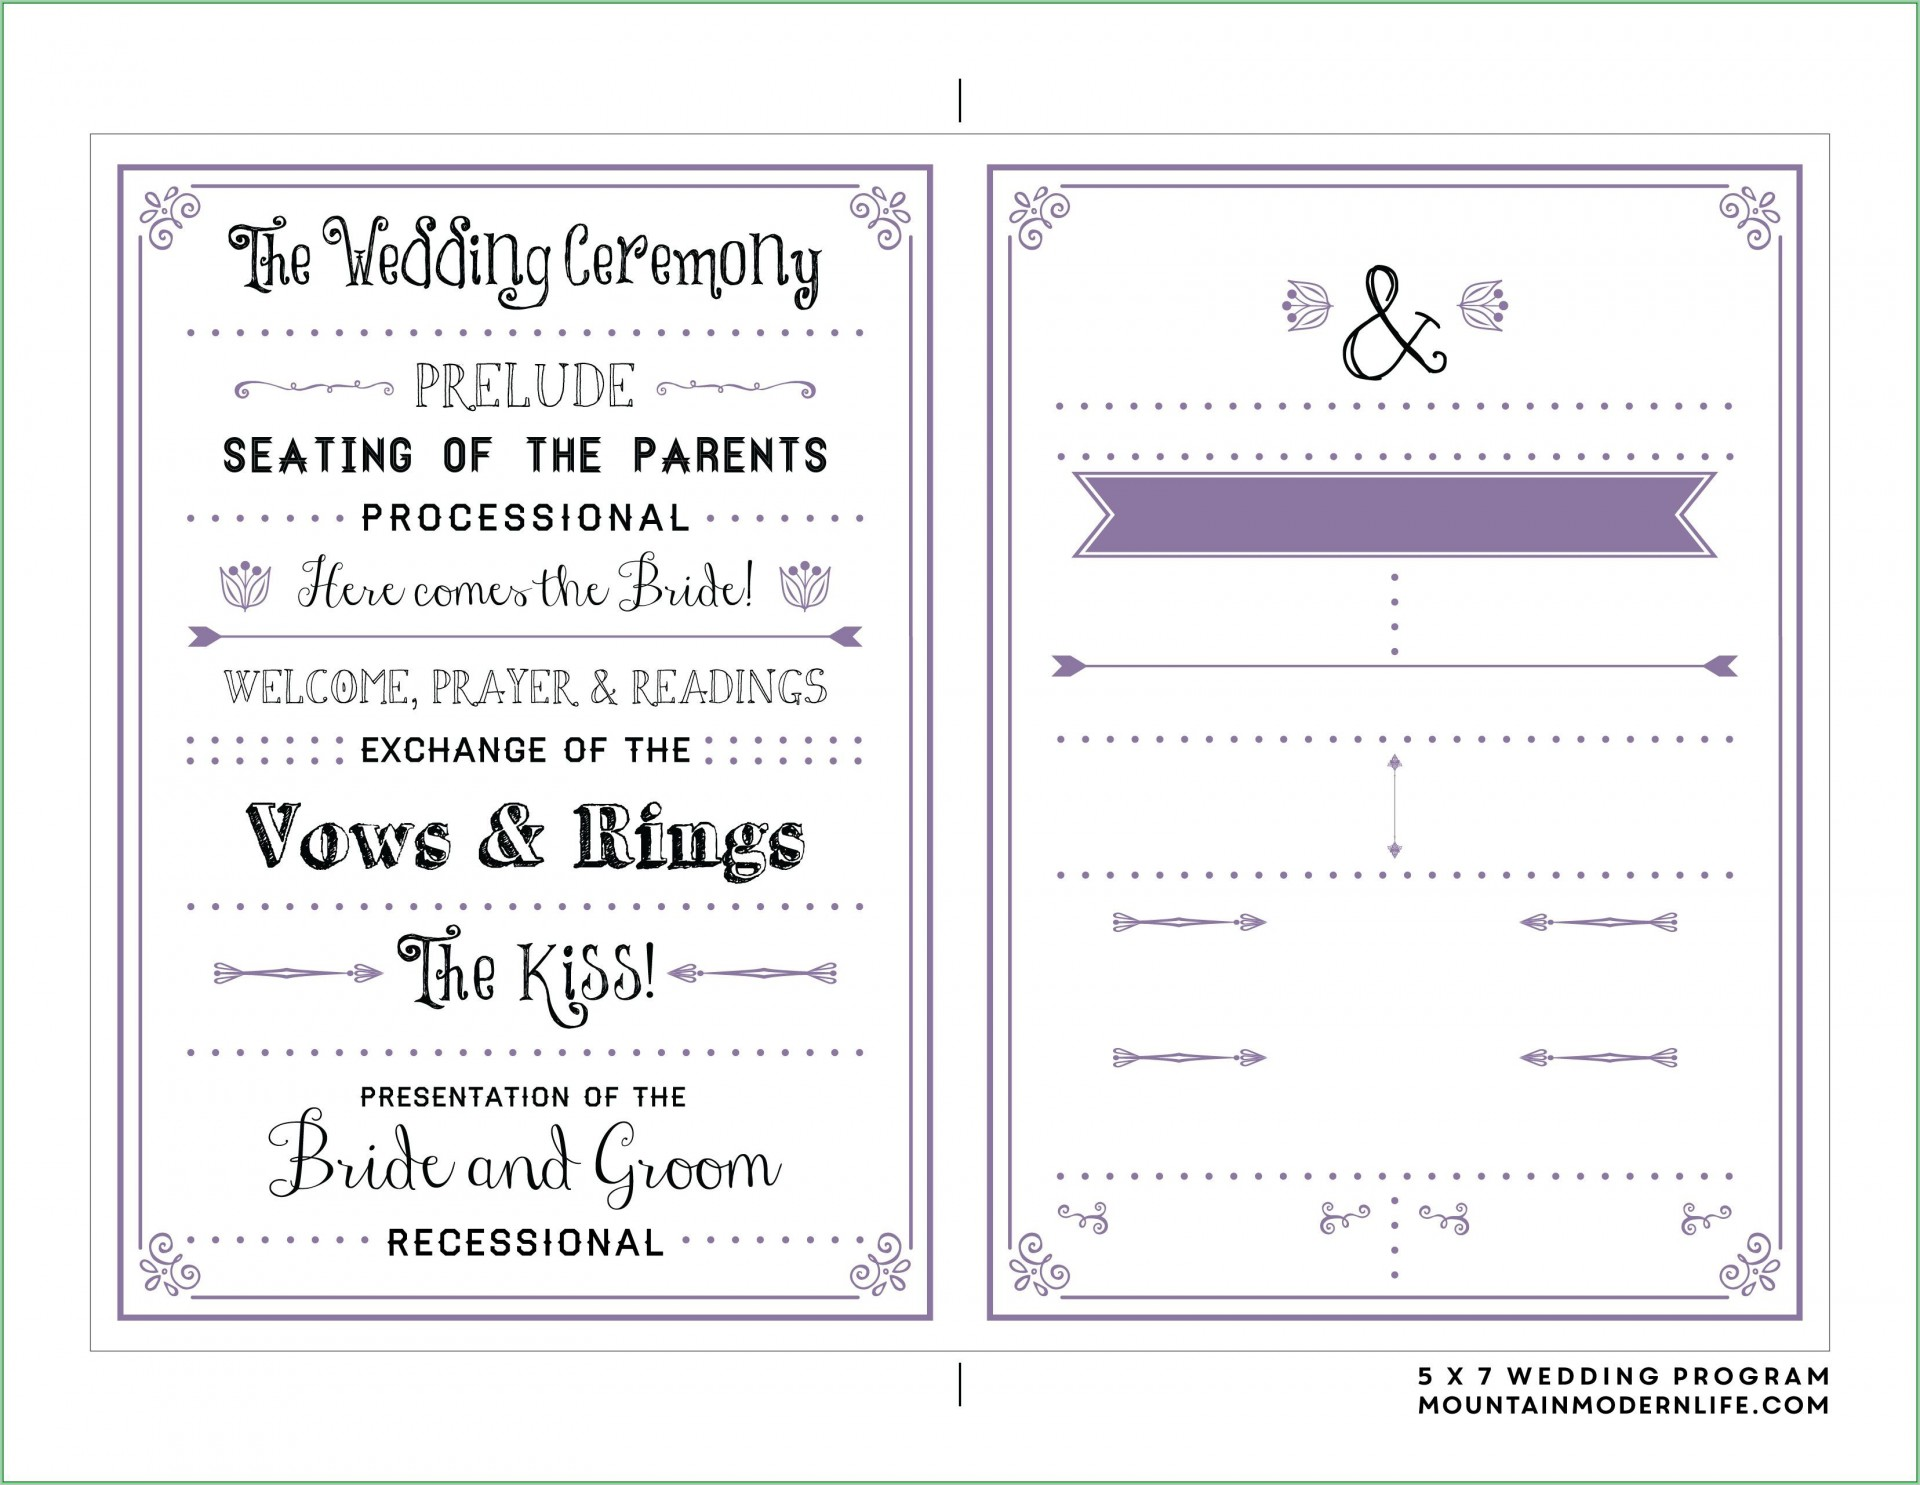 009 Stunning Free Downloadable Wedding Program Template High Definition  Templates That Can Be Printed Printable Fall Reception1920